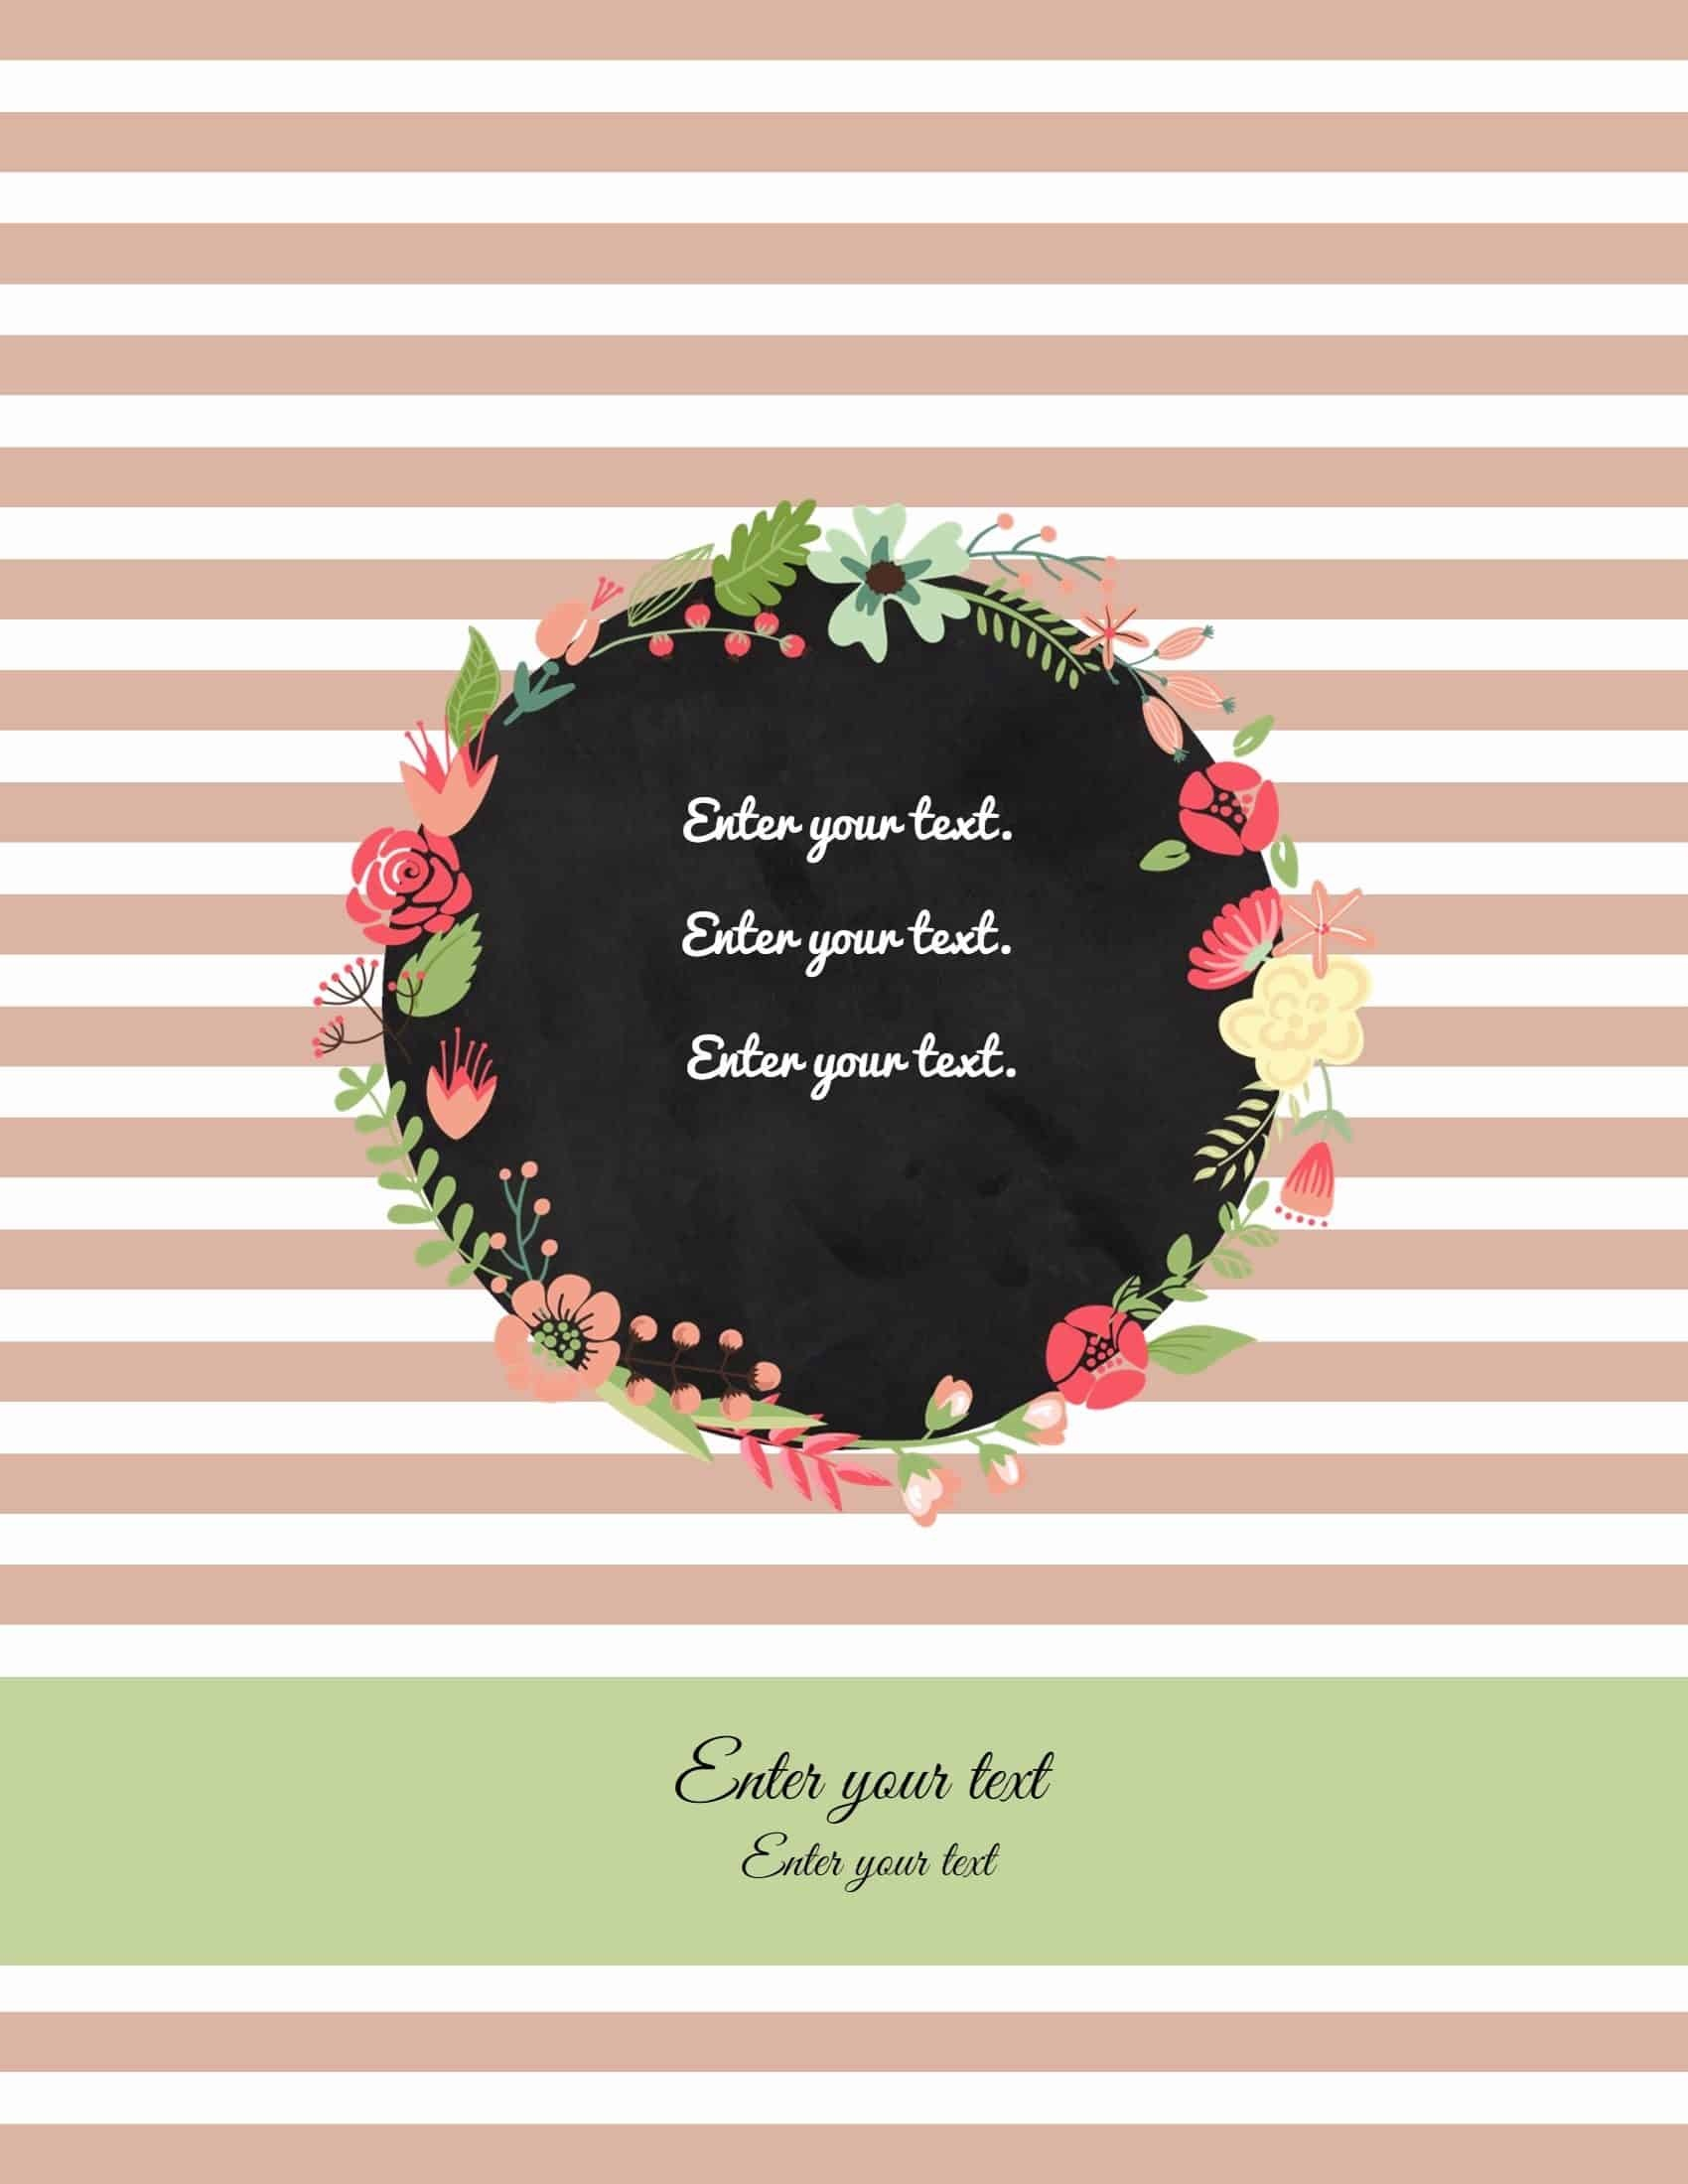 Free Binder Cover Templates   Customize Online & Print At Home   Free! - Free Printable Teacher Binder Covers